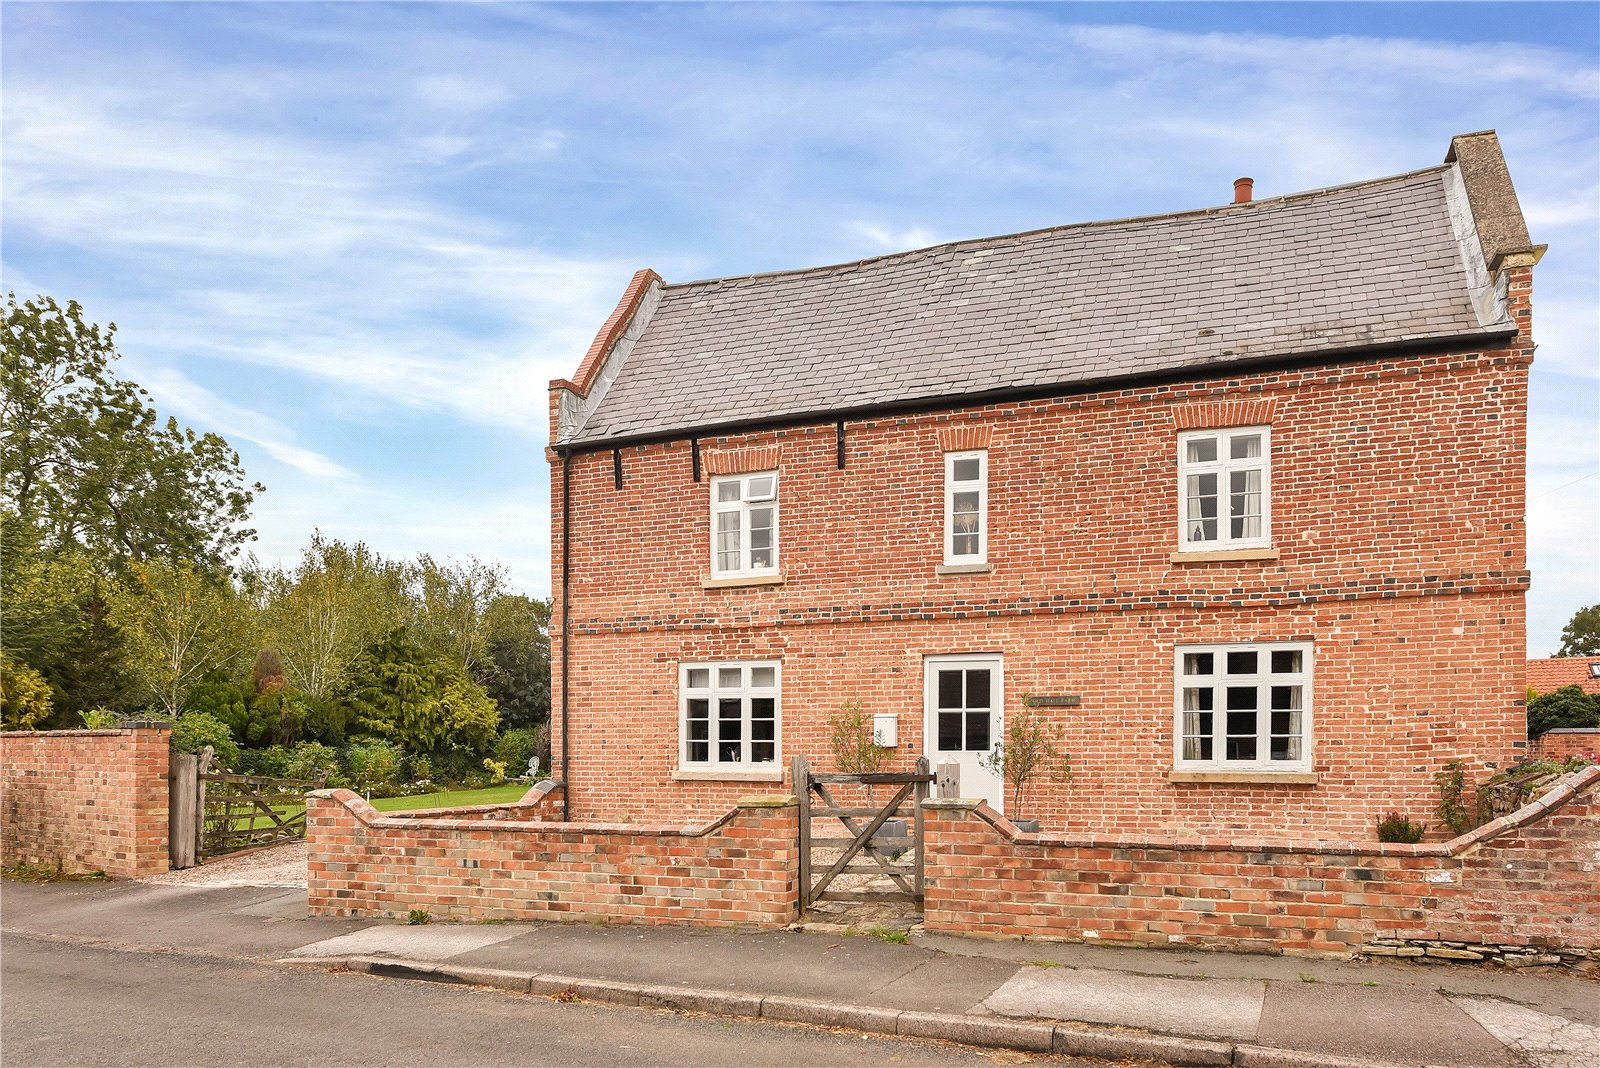 leicestershire_beautiful_traditional_english_brick_farmhouse